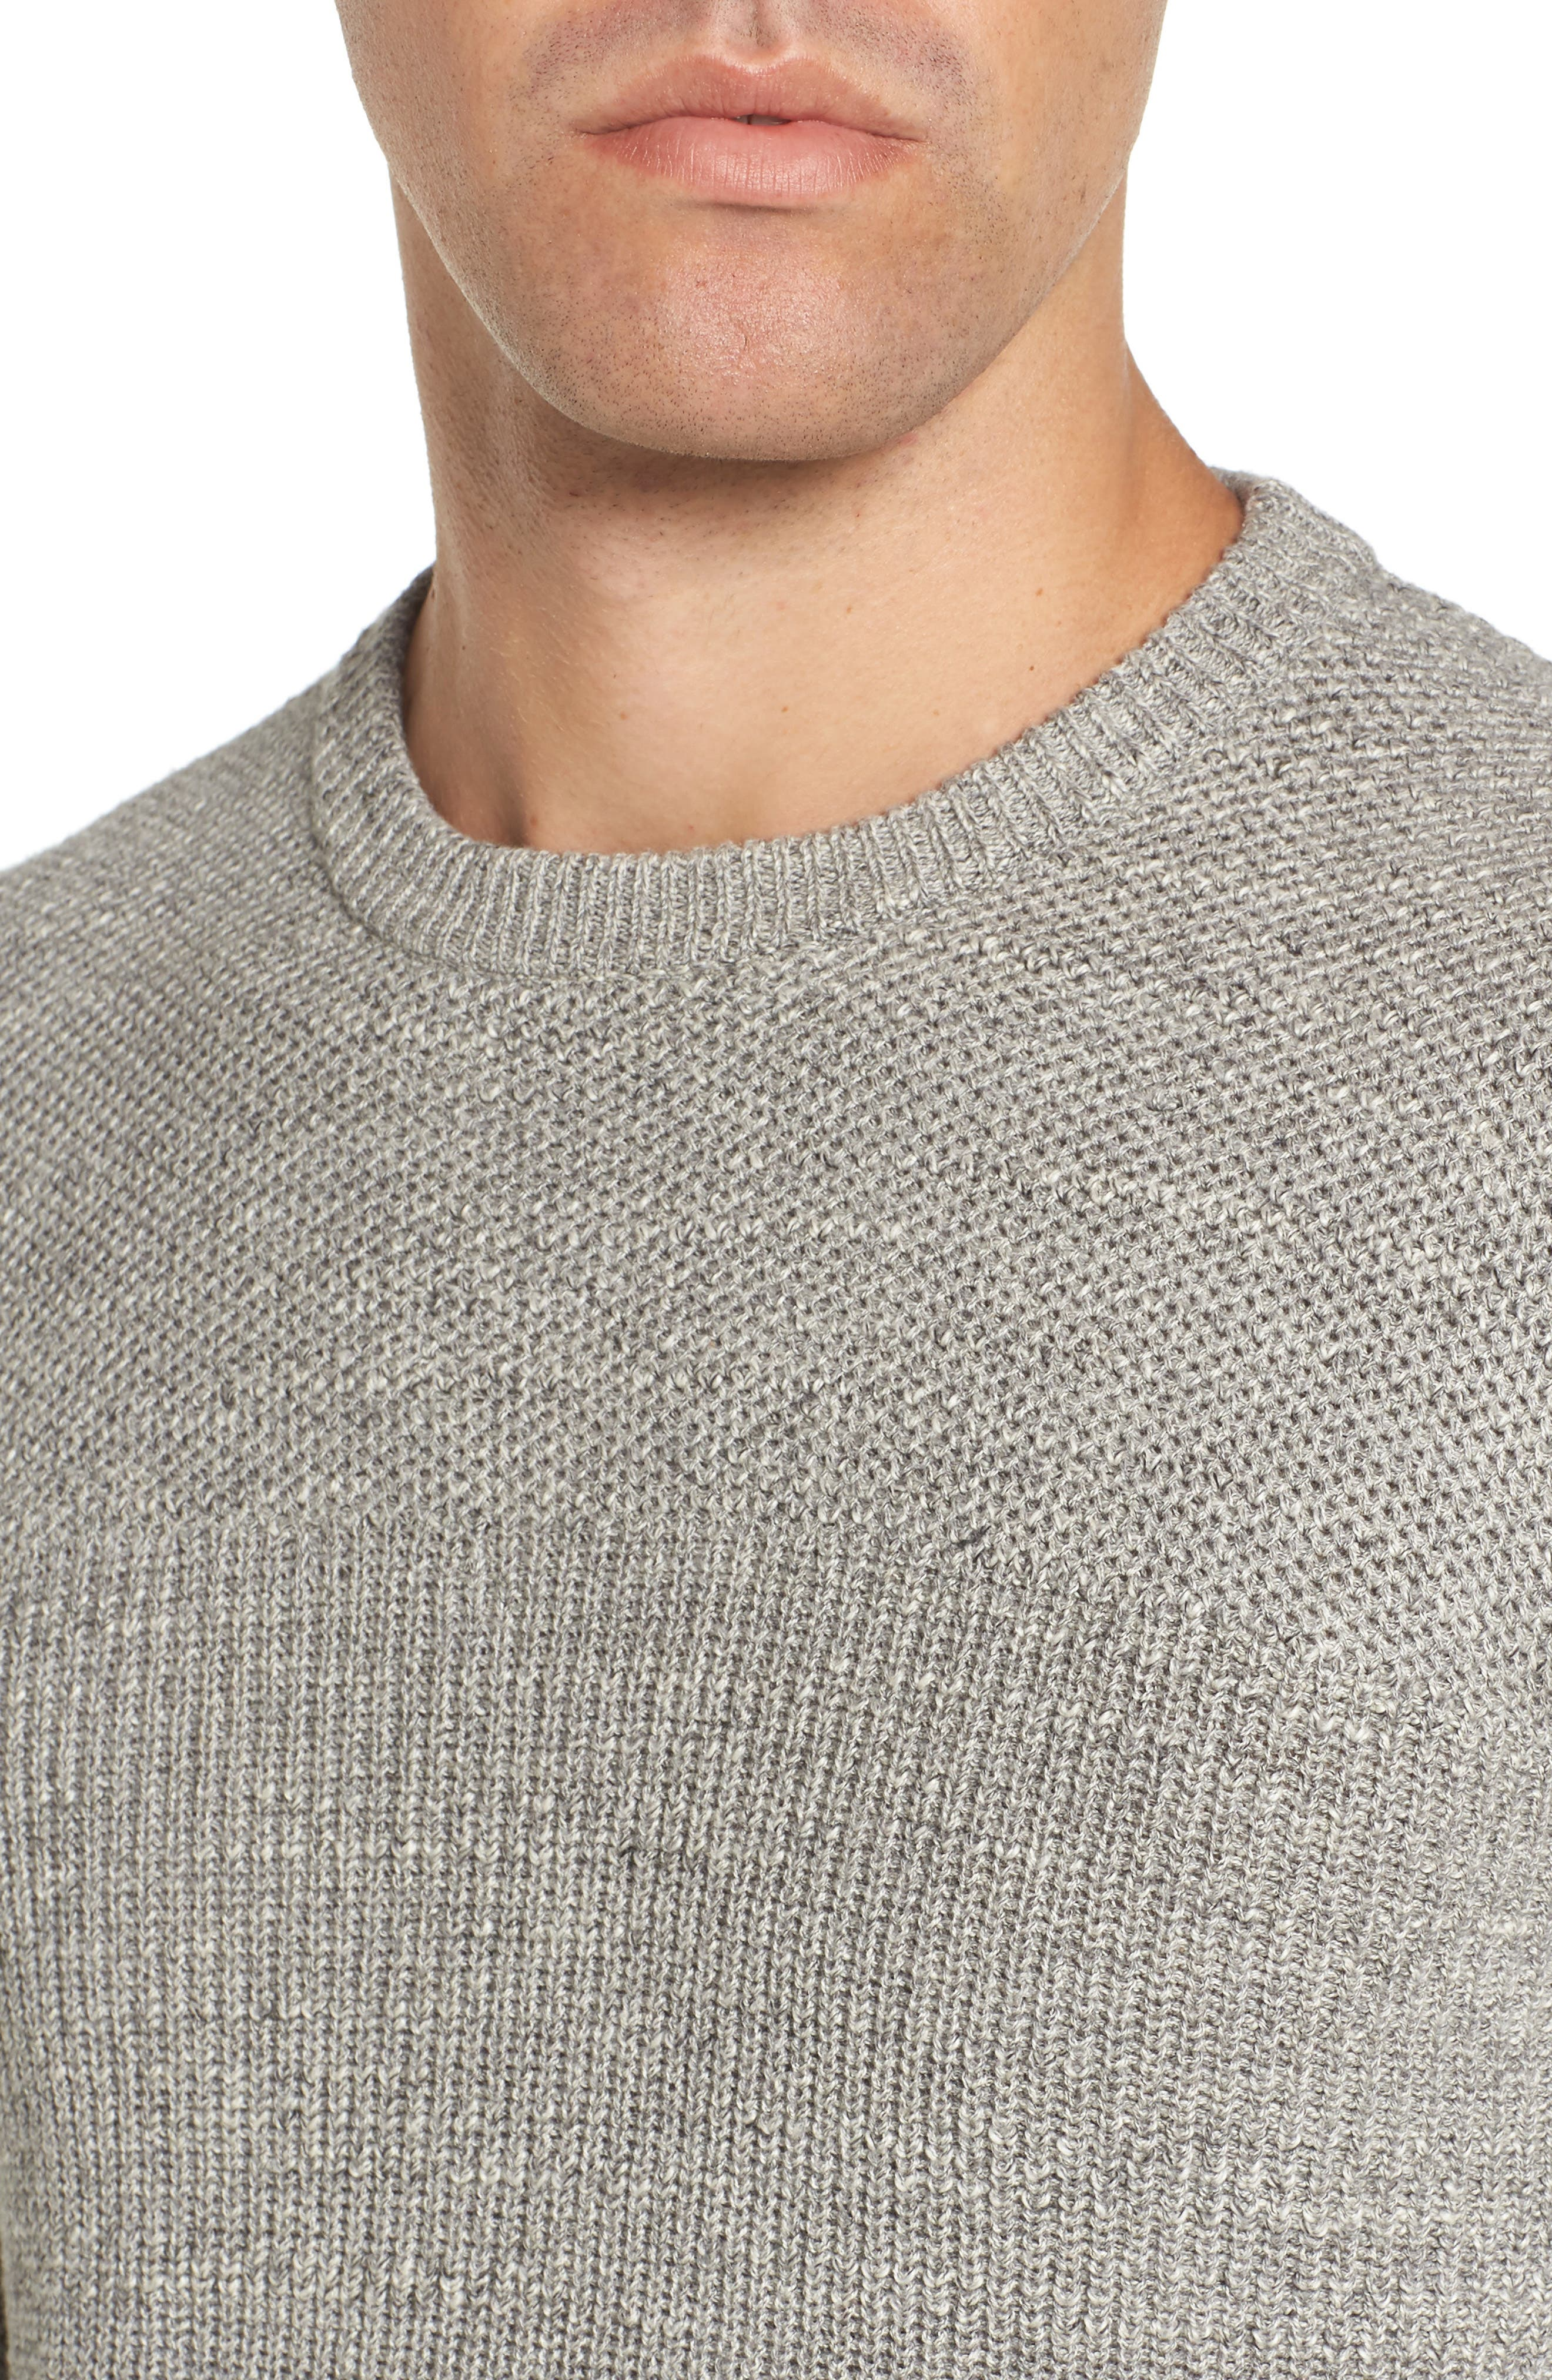 Ardsley Textured Sweater,                             Alternate thumbnail 4, color,                             052